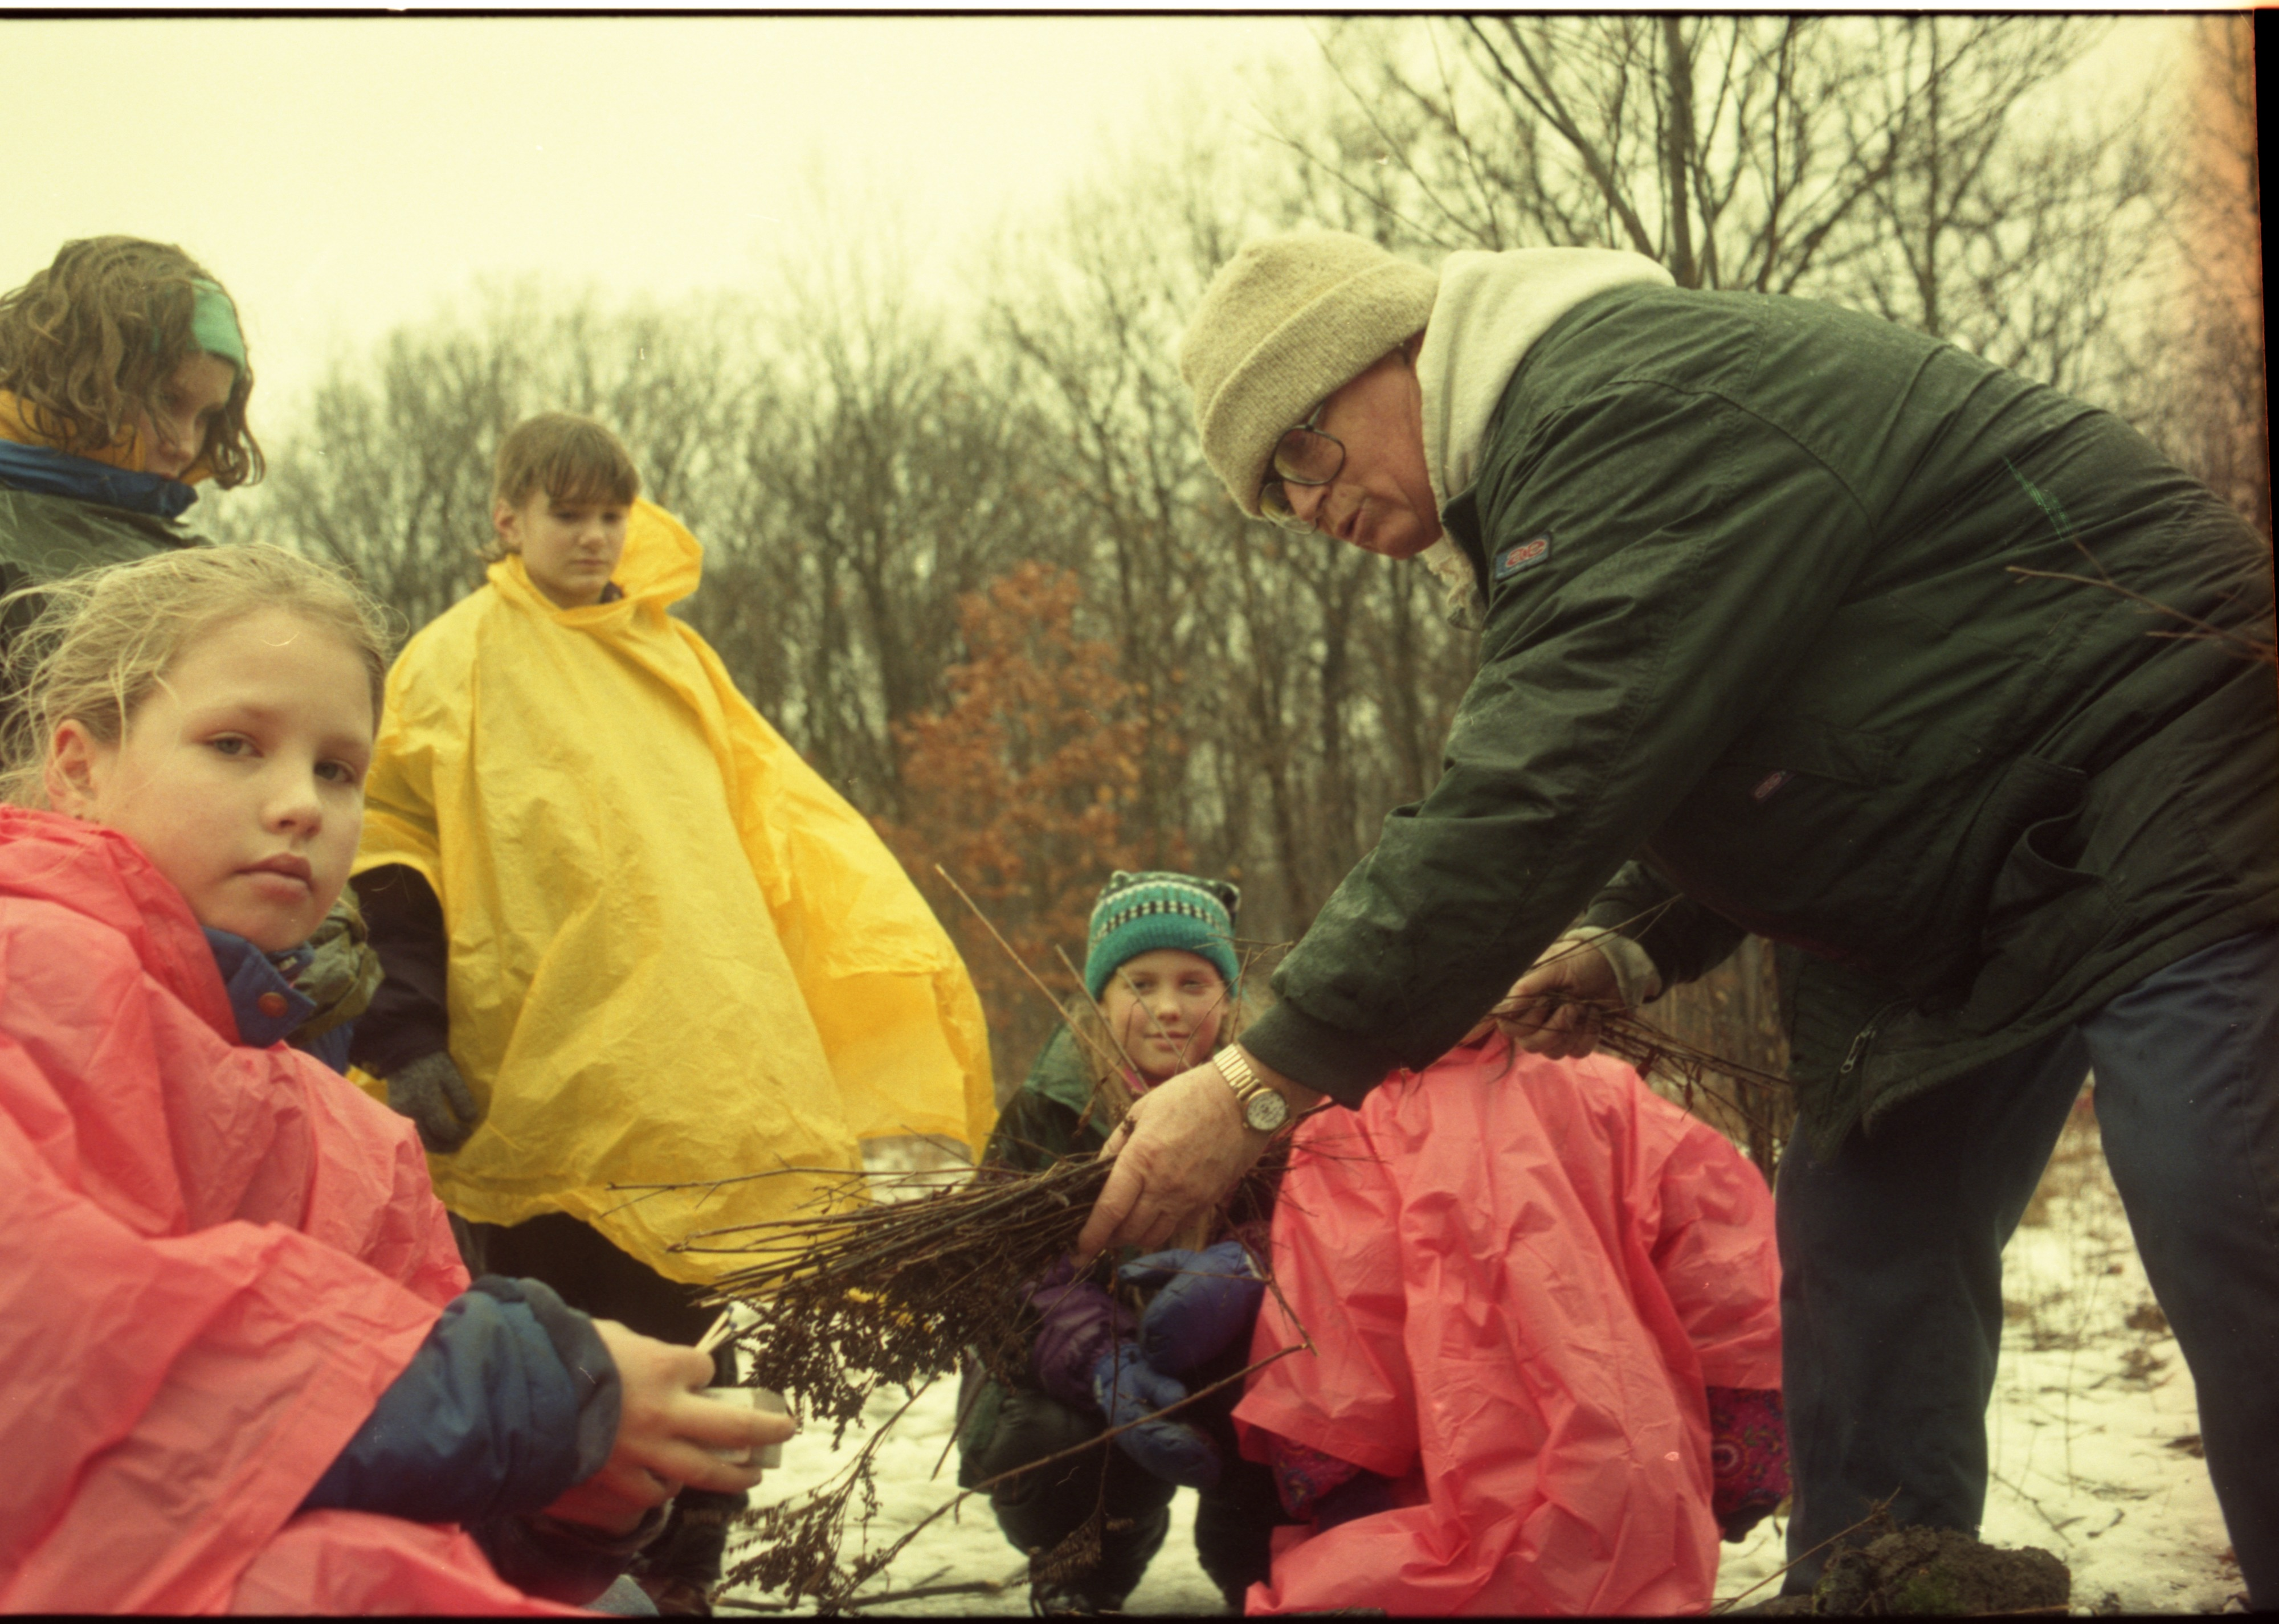 Colorfully Outfitted Eberwhite School Students Participate In Winter Survival Skills Outing, January 1997 image